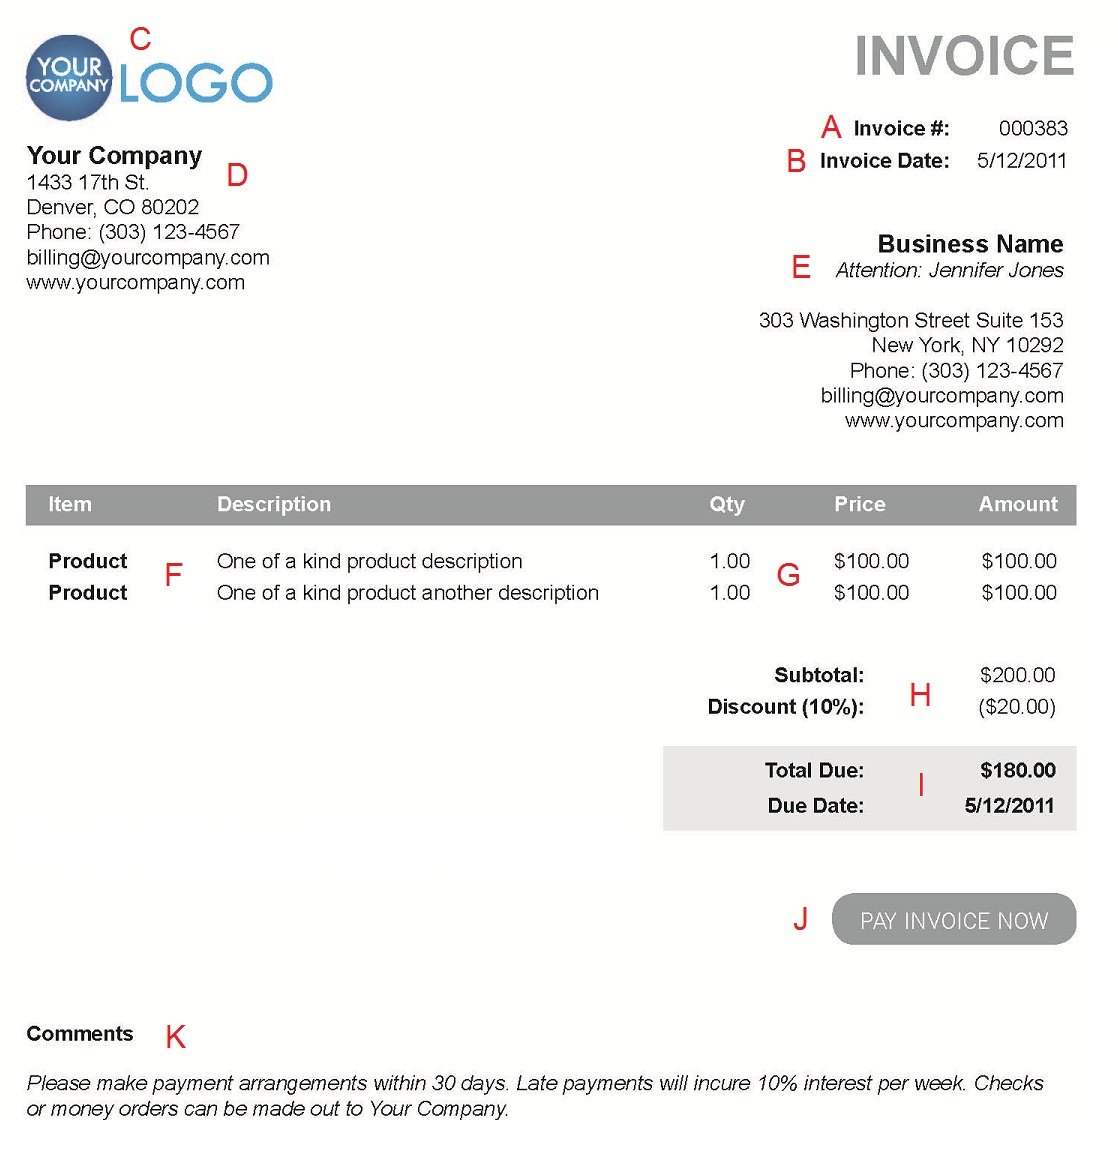 Theologygeekblogus  Pleasing The  Different Sections Of An Electronic Payment Invoice With Gorgeous A  With Adorable Mitch Hedberg Donut Receipt Also Stir Fry Receipt In Addition Acknowledge Receipt Of This Email And Turn On Read Receipts Outlook As Well As Order Receipt Sample Additionally Sales Receipt Definition From Paysimplecom With Theologygeekblogus  Gorgeous The  Different Sections Of An Electronic Payment Invoice With Adorable A  And Pleasing Mitch Hedberg Donut Receipt Also Stir Fry Receipt In Addition Acknowledge Receipt Of This Email From Paysimplecom